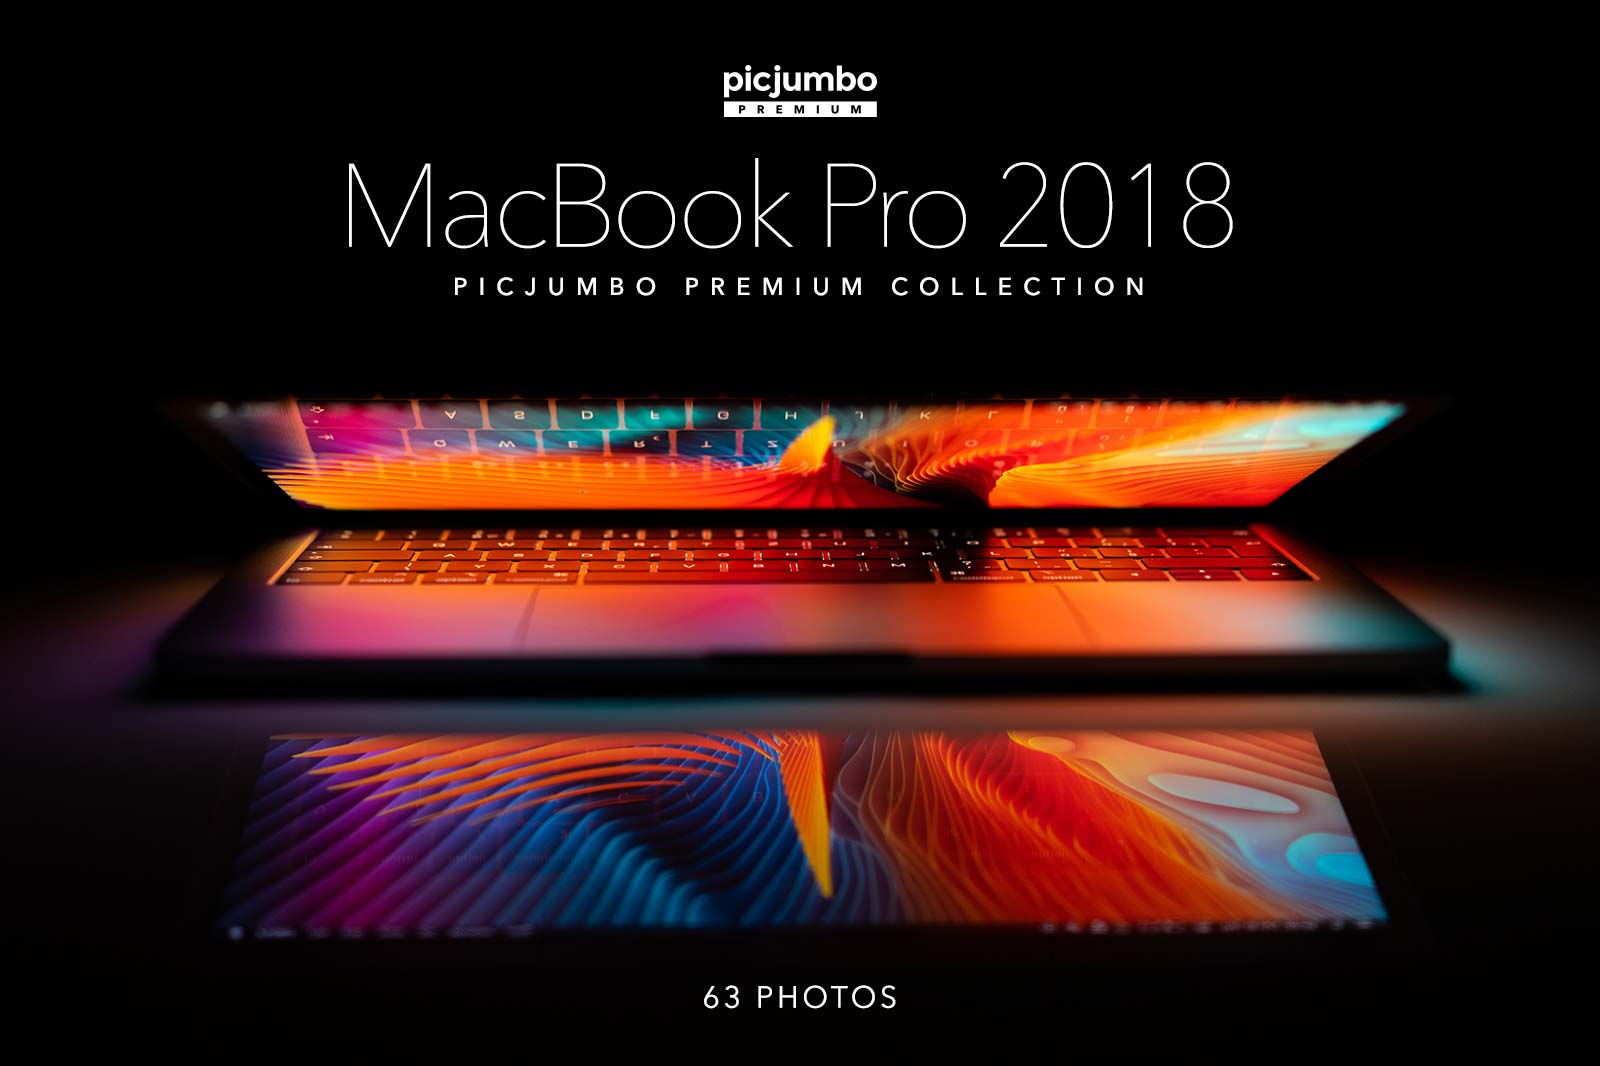 MacBook Pro 2018 — Join PREMIUM and get instant access to this collection!